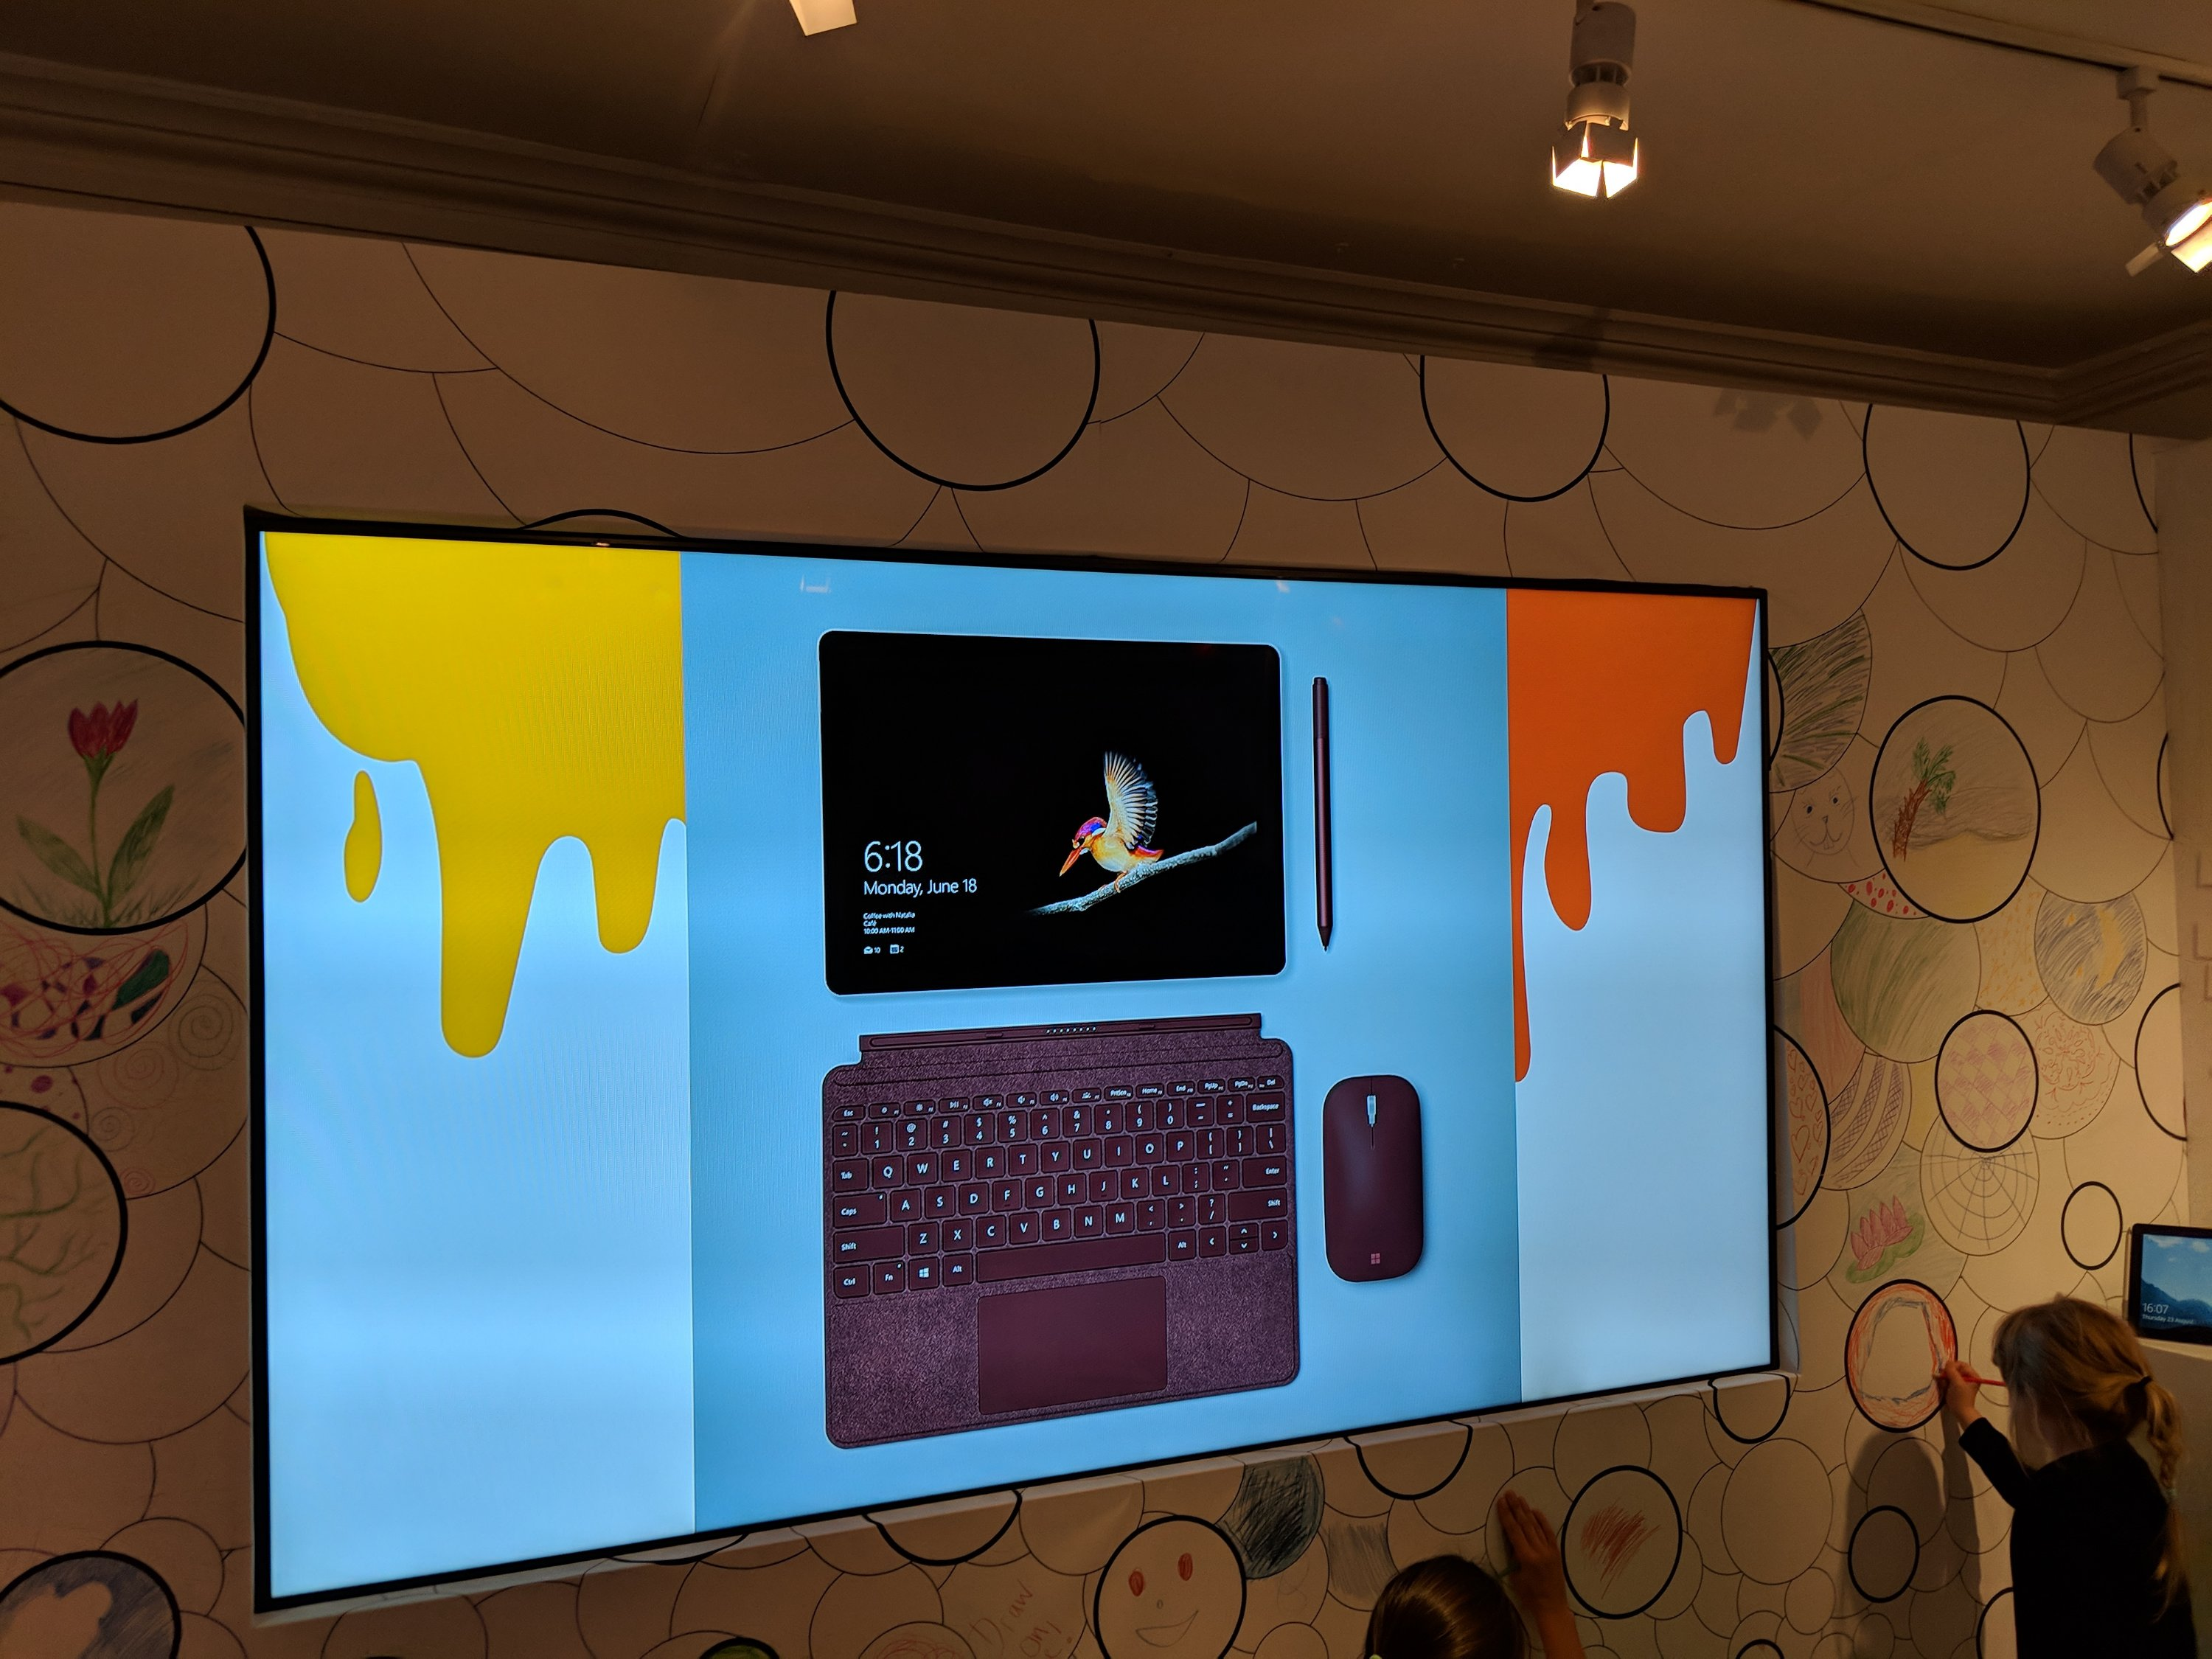 Images of the Microsoft Surface Go